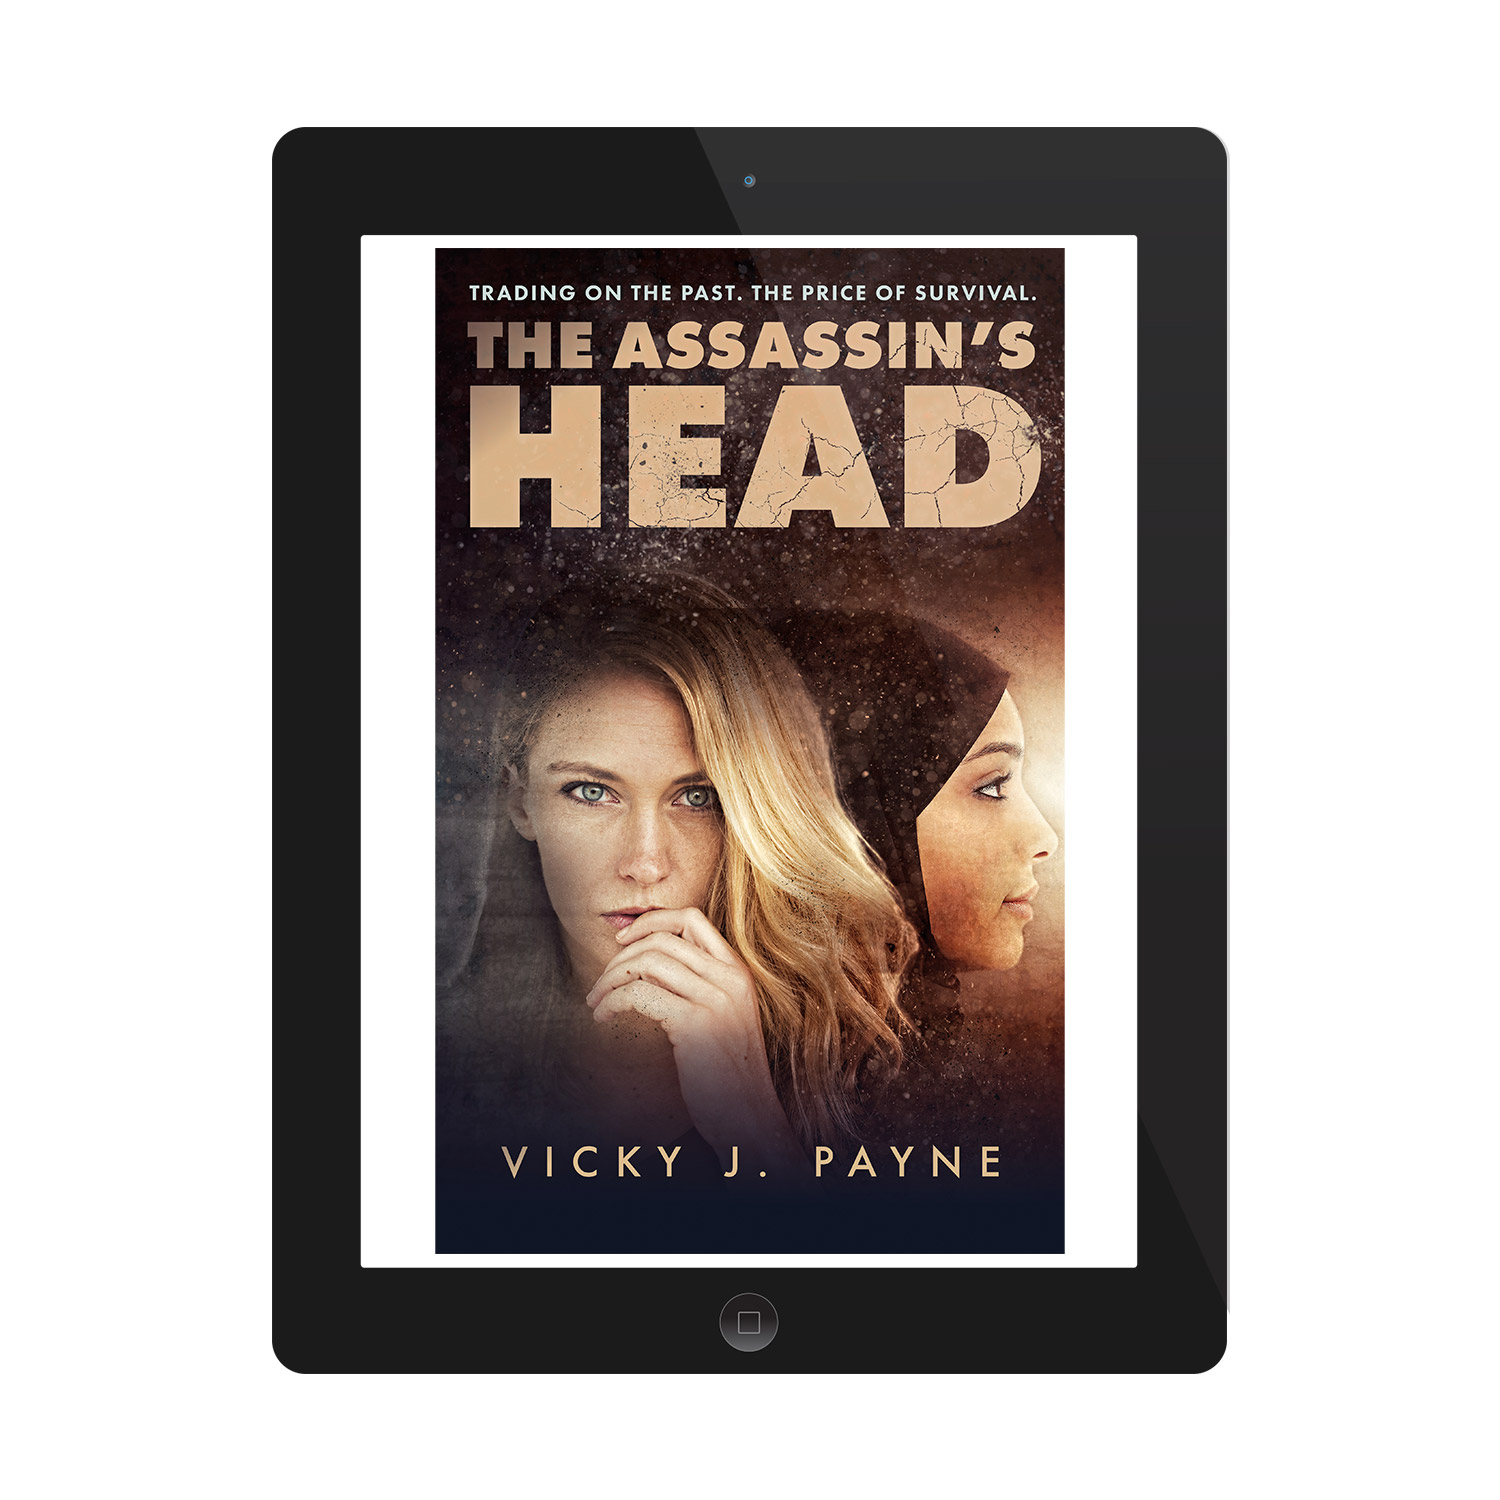 'The Assassin's Head' is a terrific female-led thriller, set in the aftermath of the 2003 Iraq War. The author is Vicky J. Ward. The book cover design and interior formatting are by Mark Thomas. To learn more about what Mark could do for your book, please visit coverness.com.